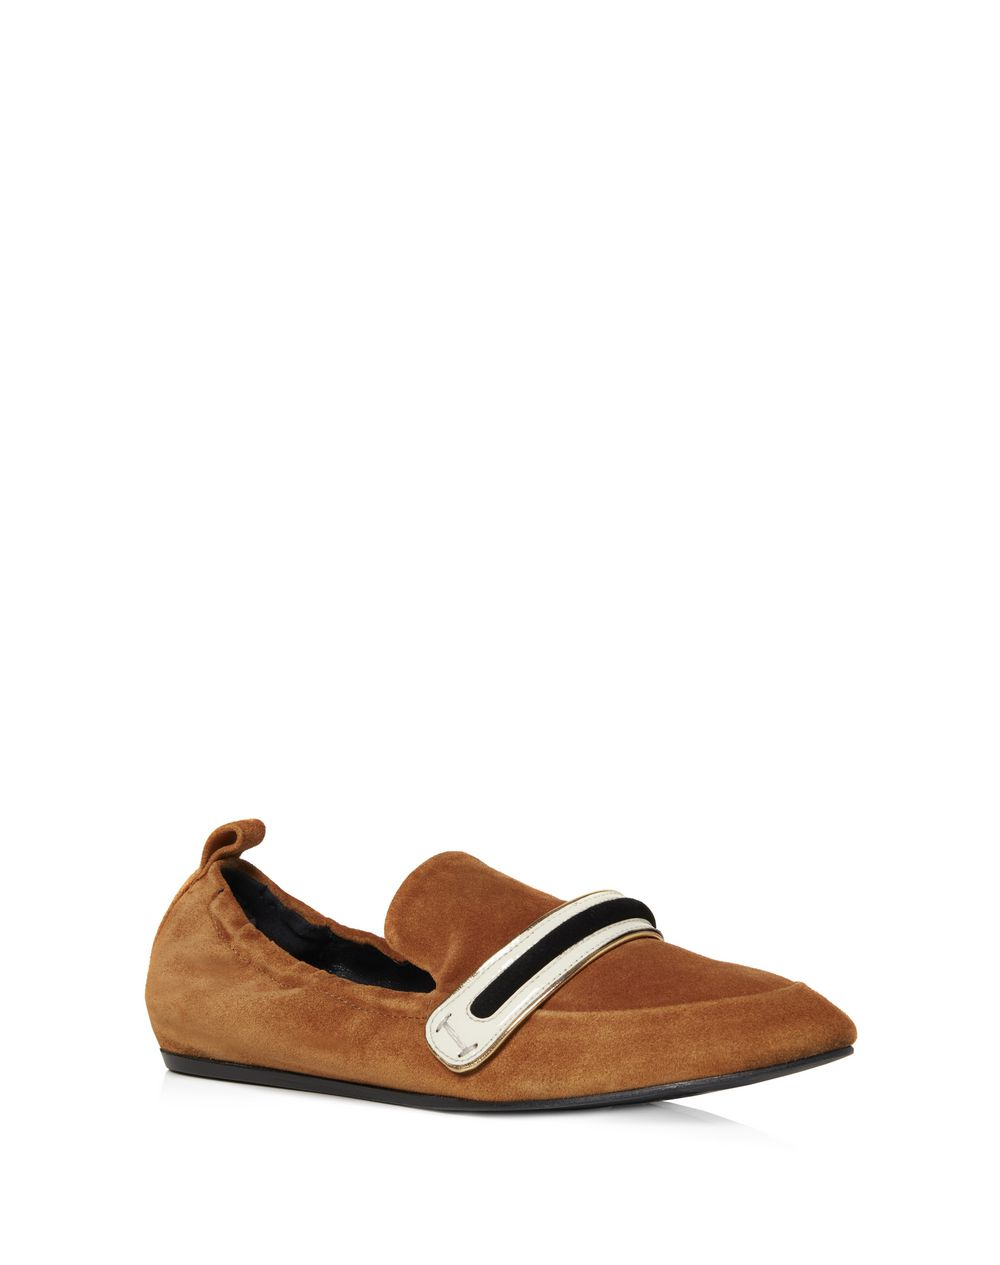 SUPPLE DUAL MATERIAL LOAFER - Lanvin